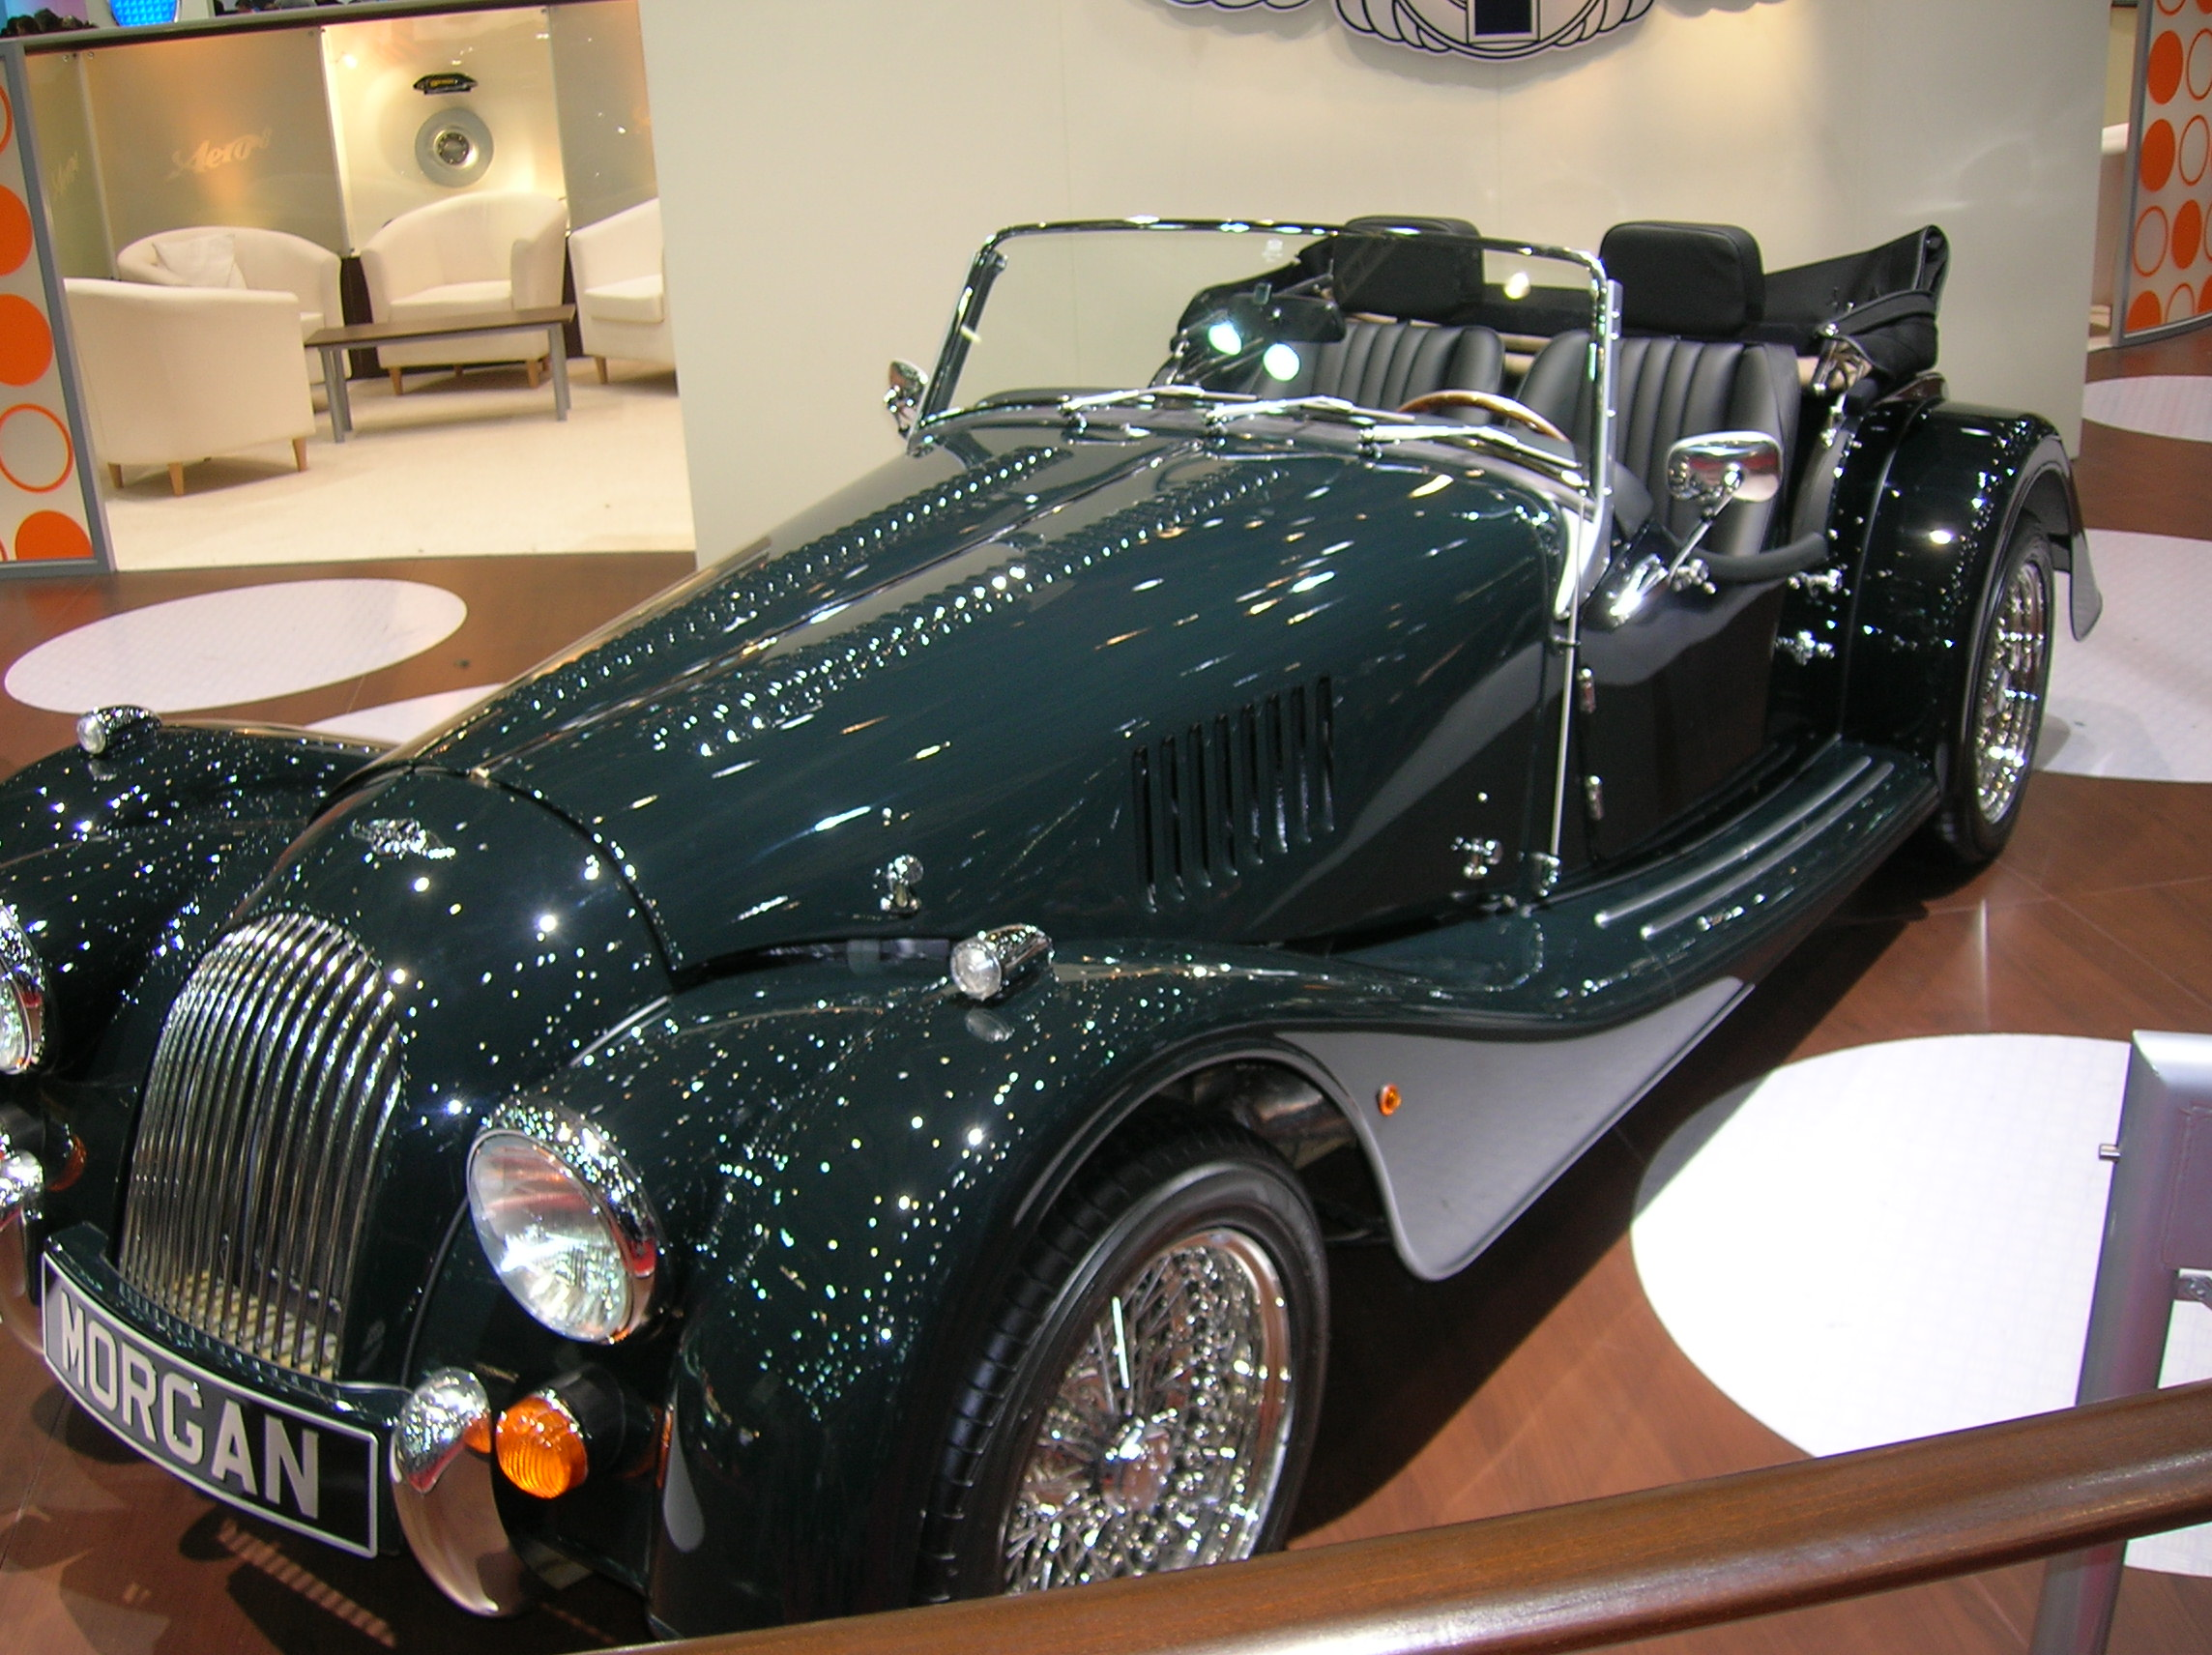 Morgan Roadster image #3